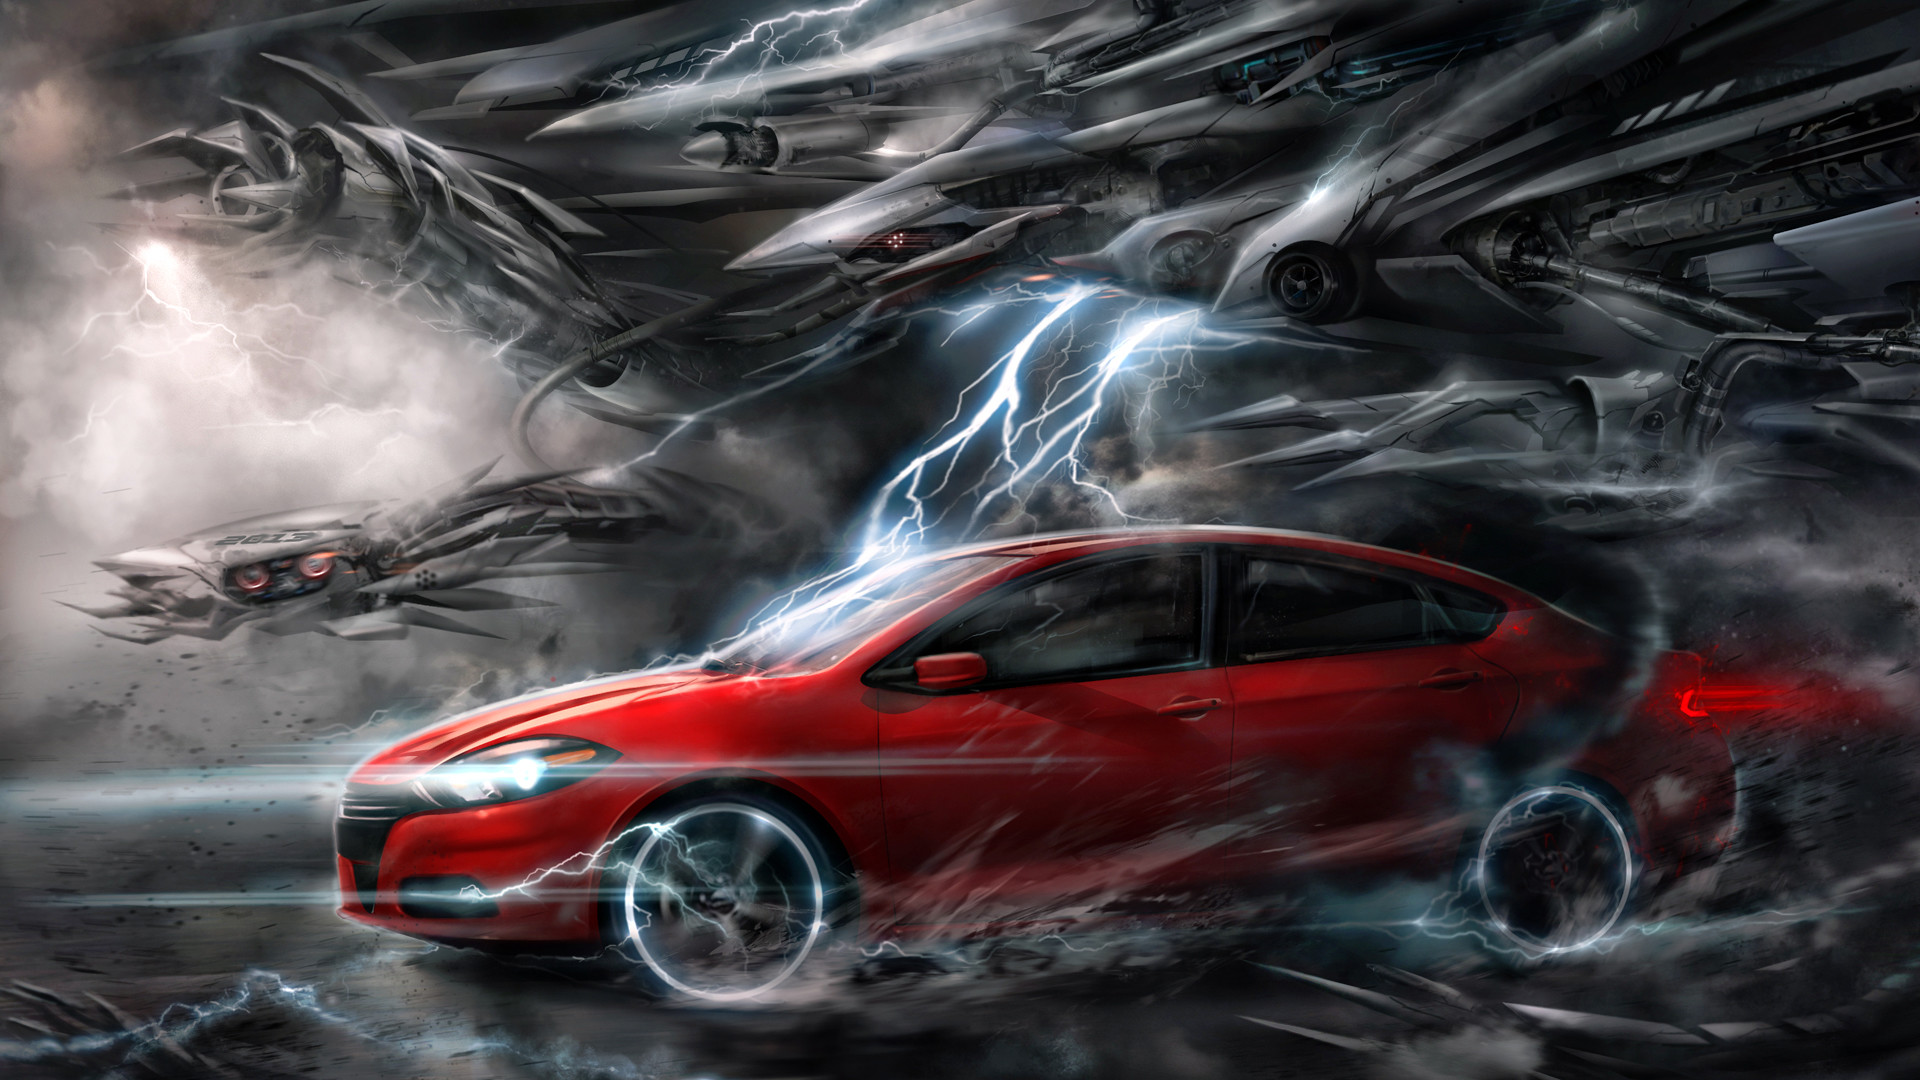 1920x1080 Homepage Auto and Vehicules Red car wallpaper  1